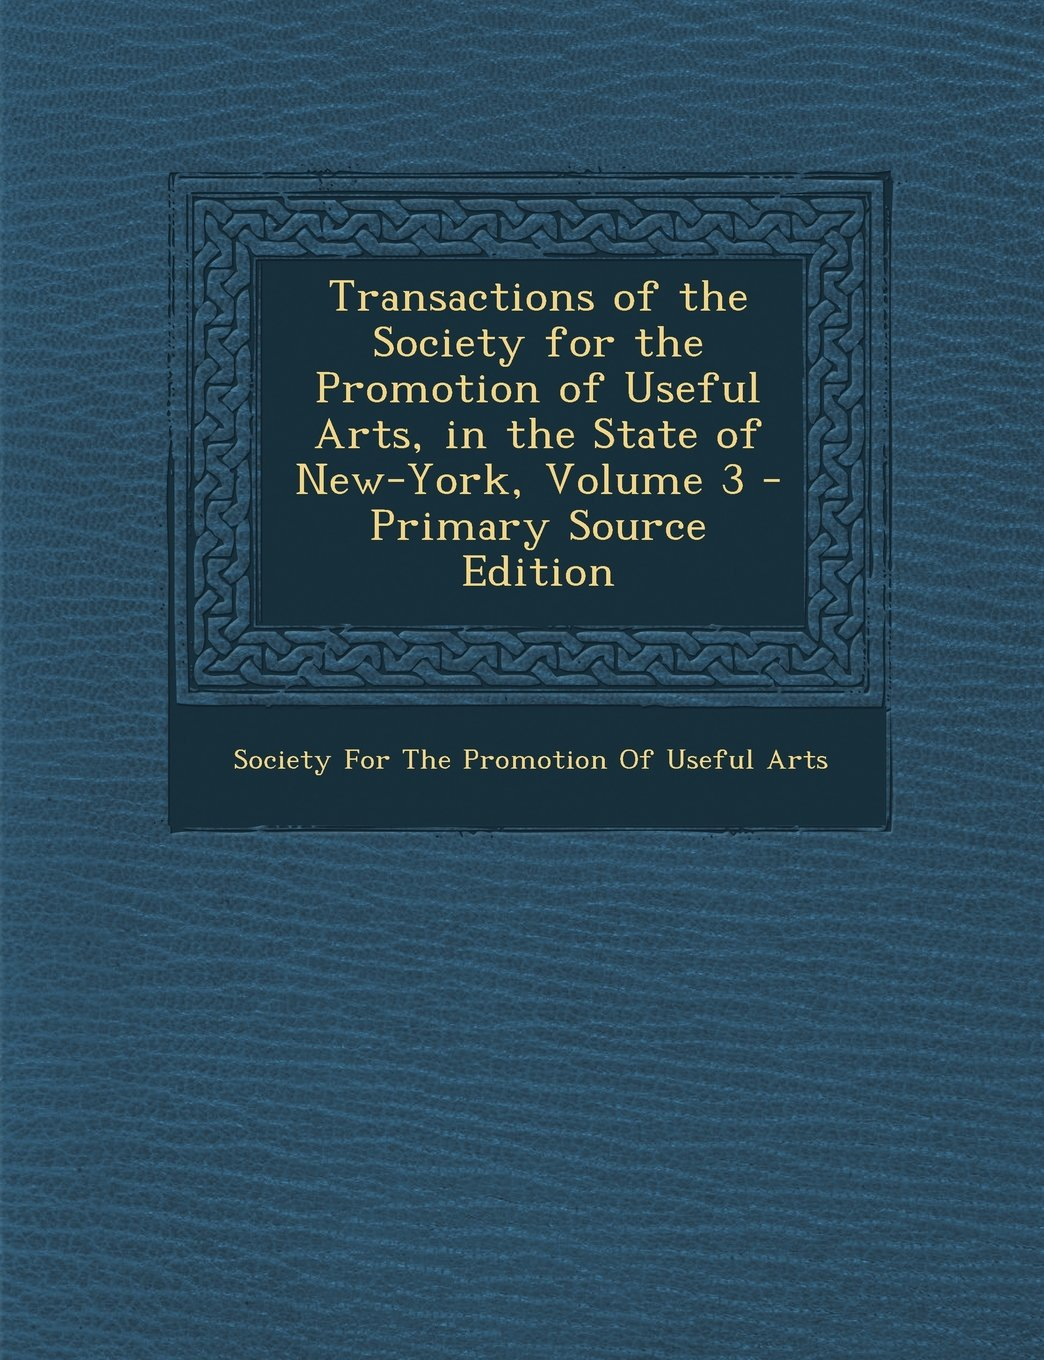 Transactions of the Society for the Promotion of Useful Arts, in the State of New-York, Volume 3 - Primary Source Edition pdf